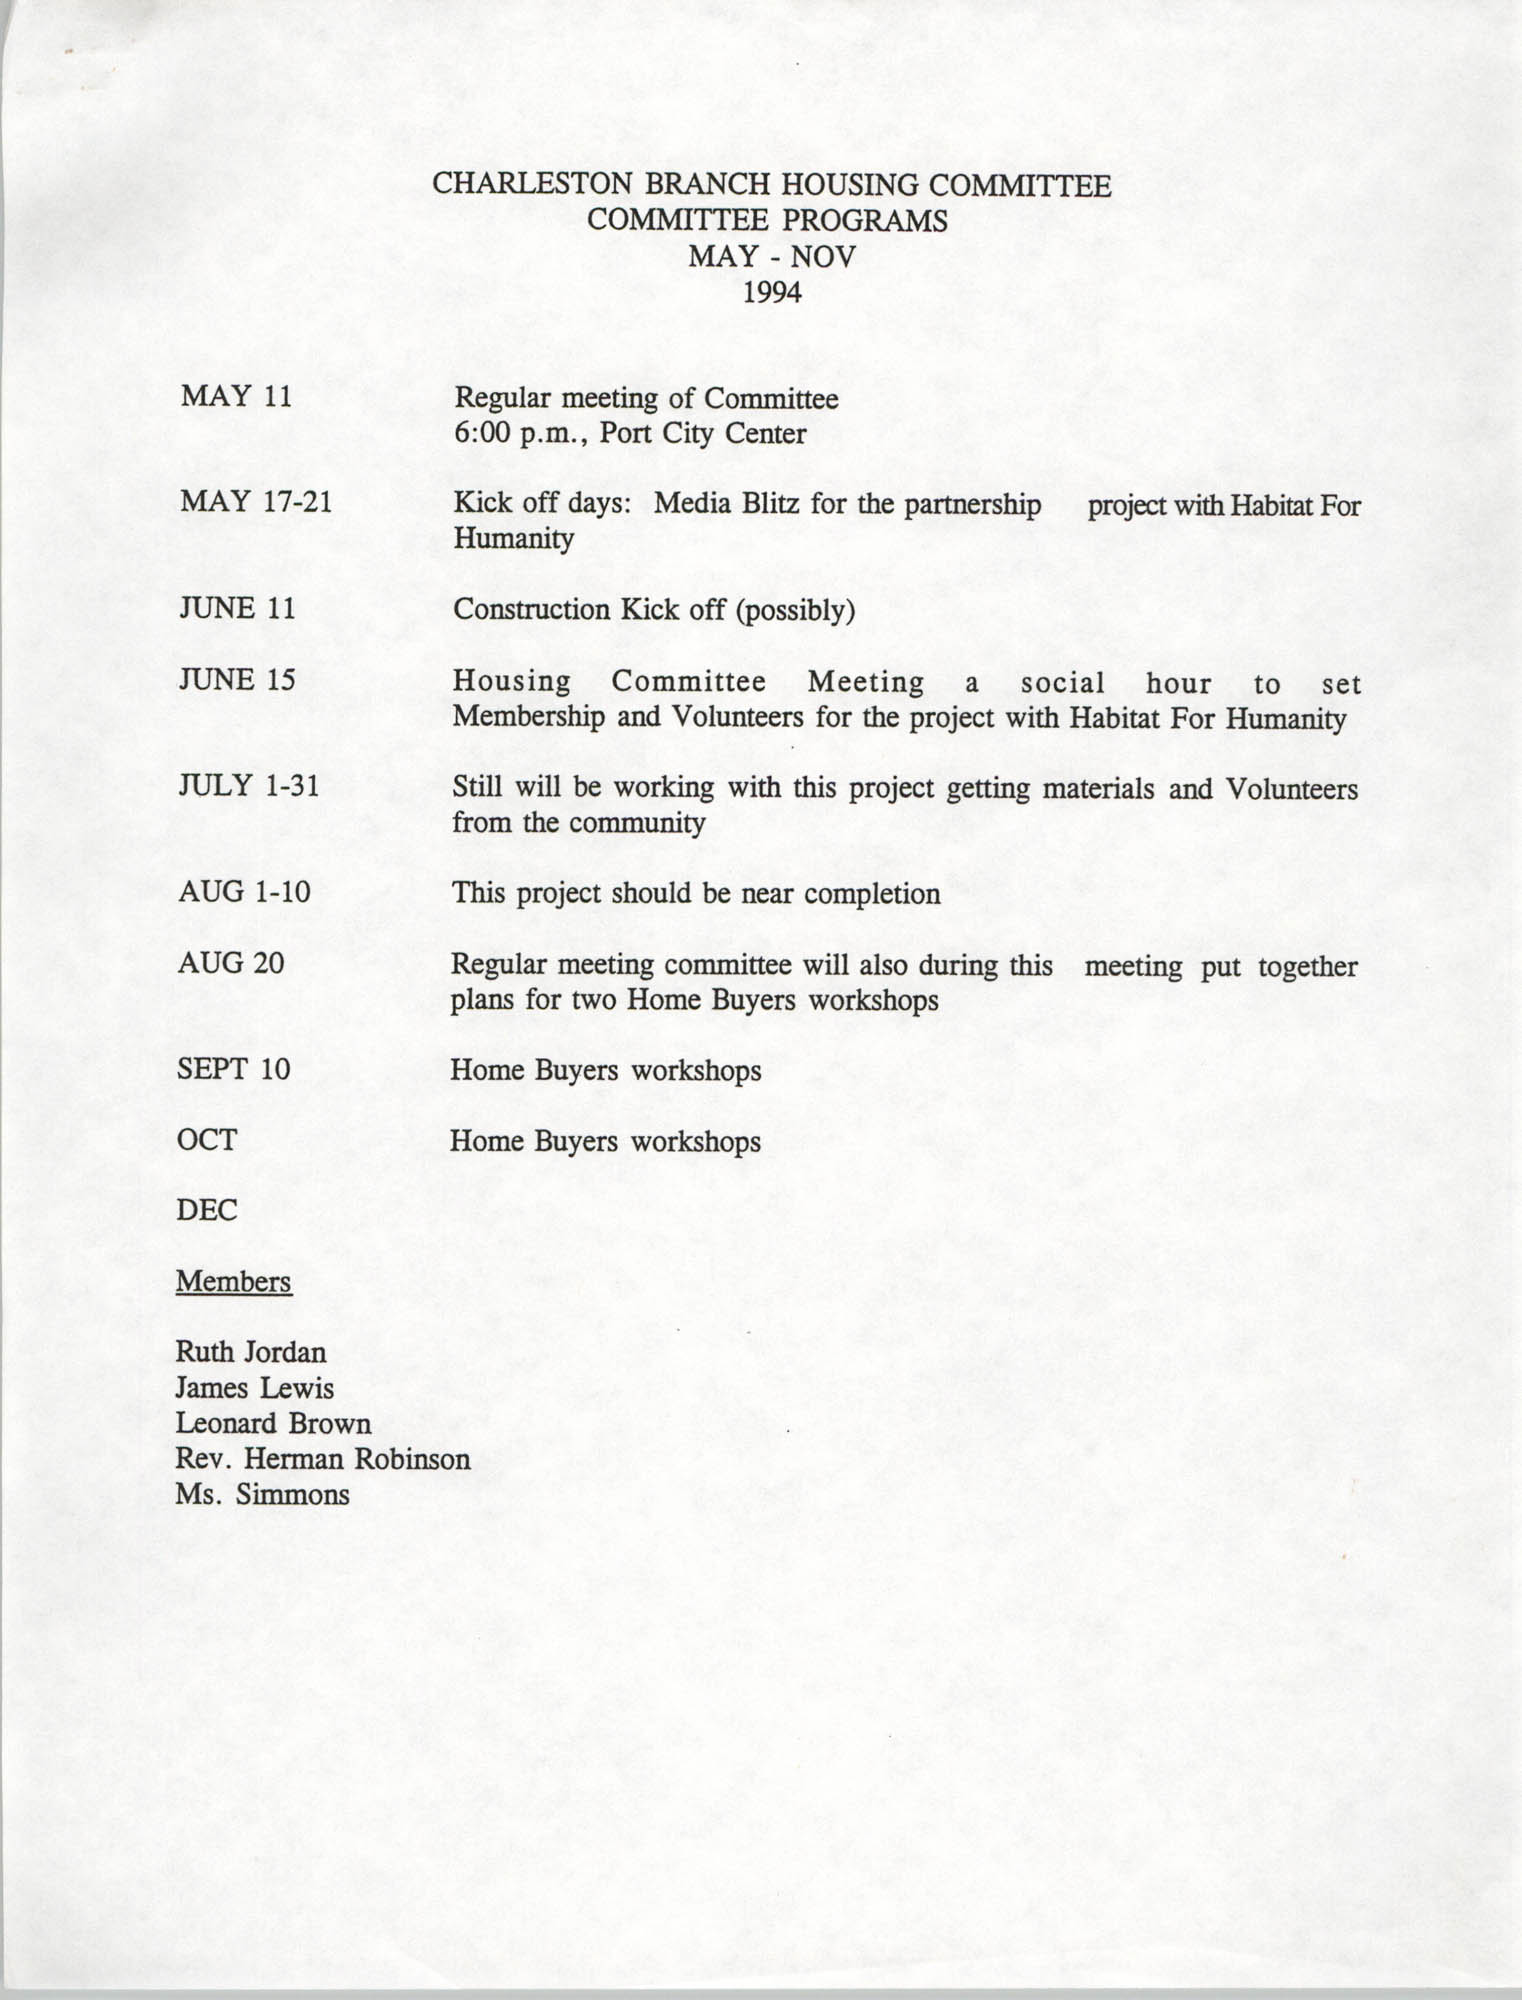 Housing Committee Programs, Charleston Branch of the NAACP, 1994